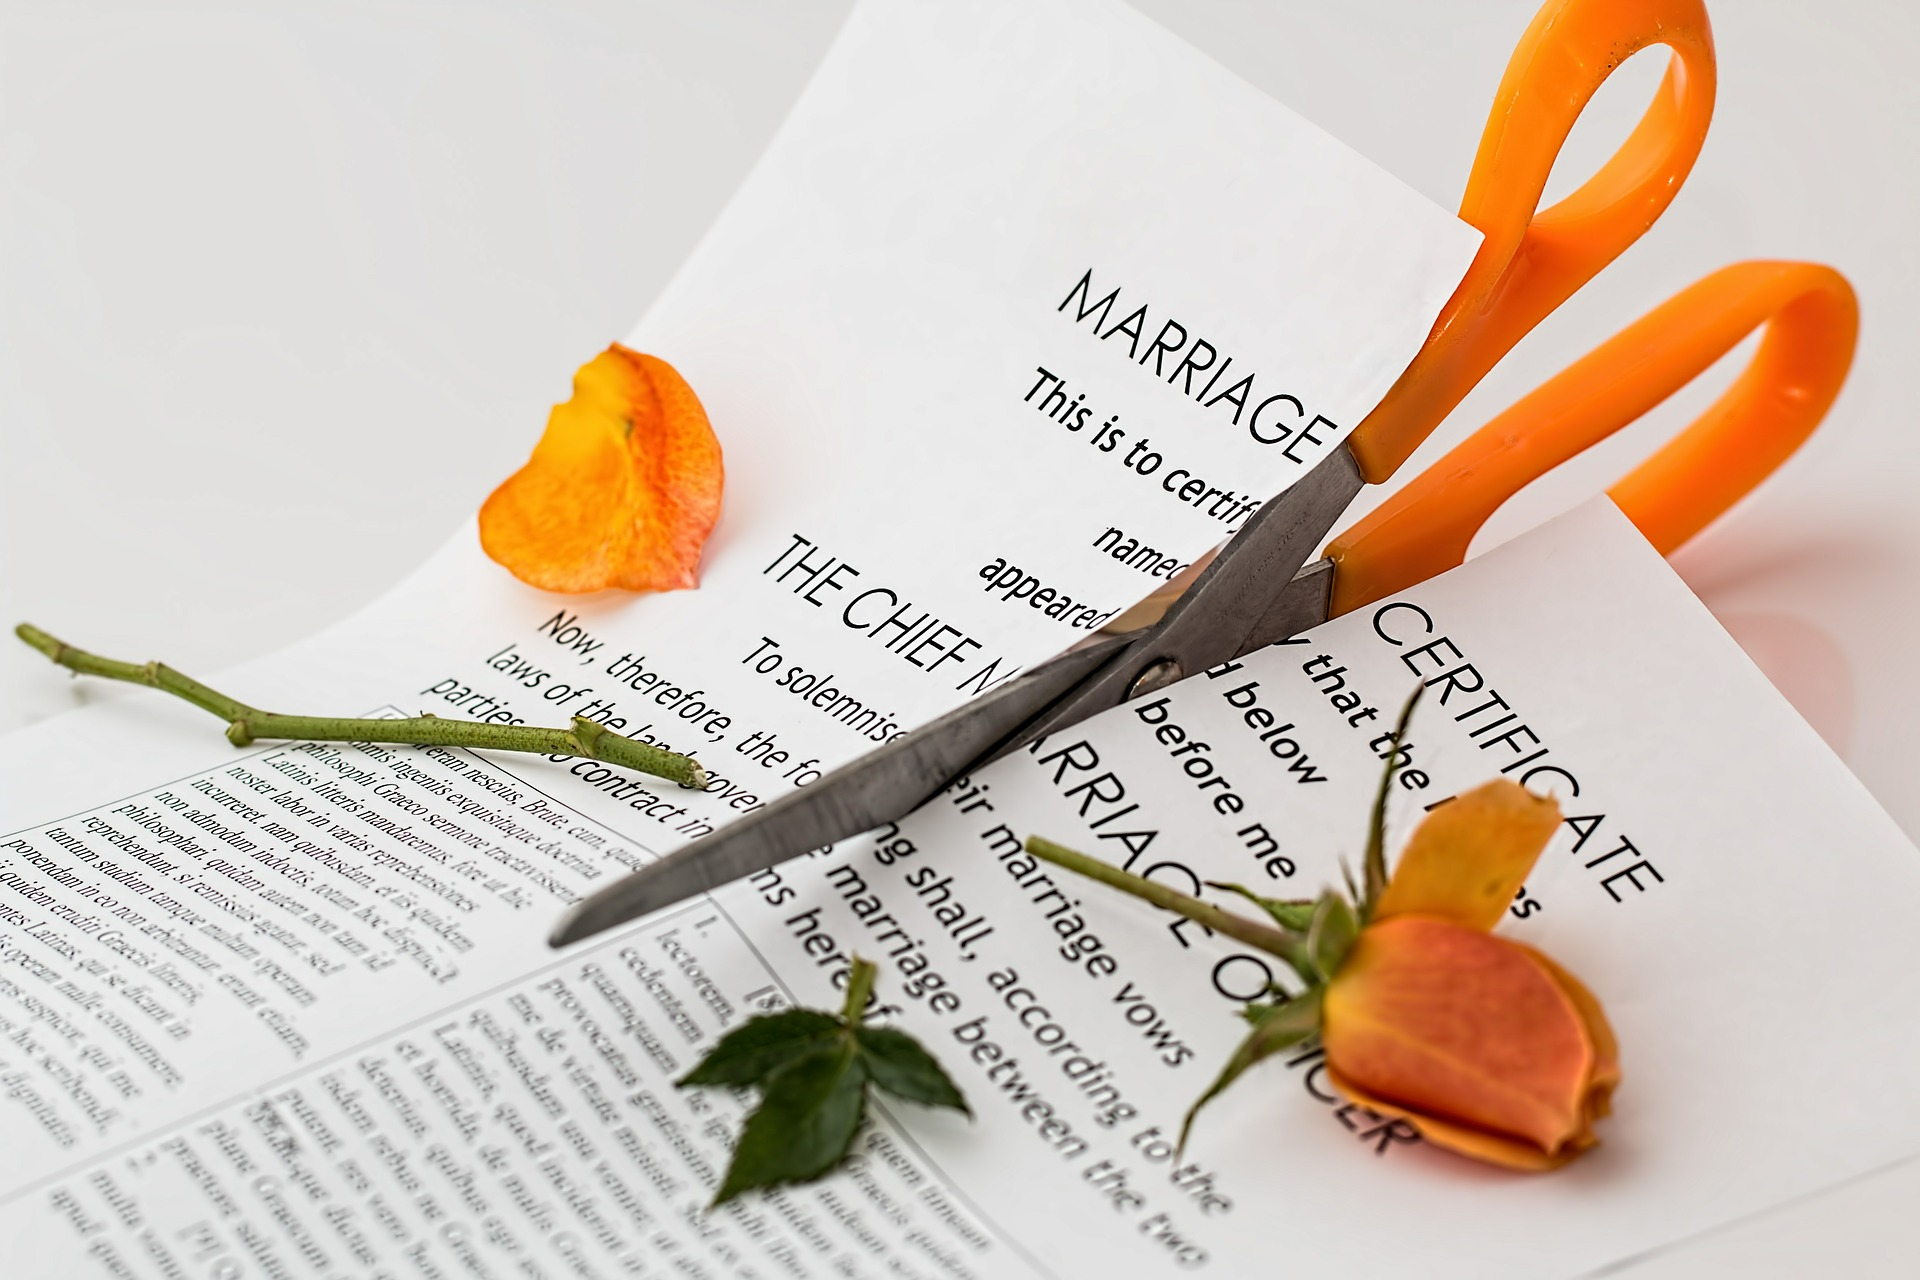 Ex-spouses and property disputes